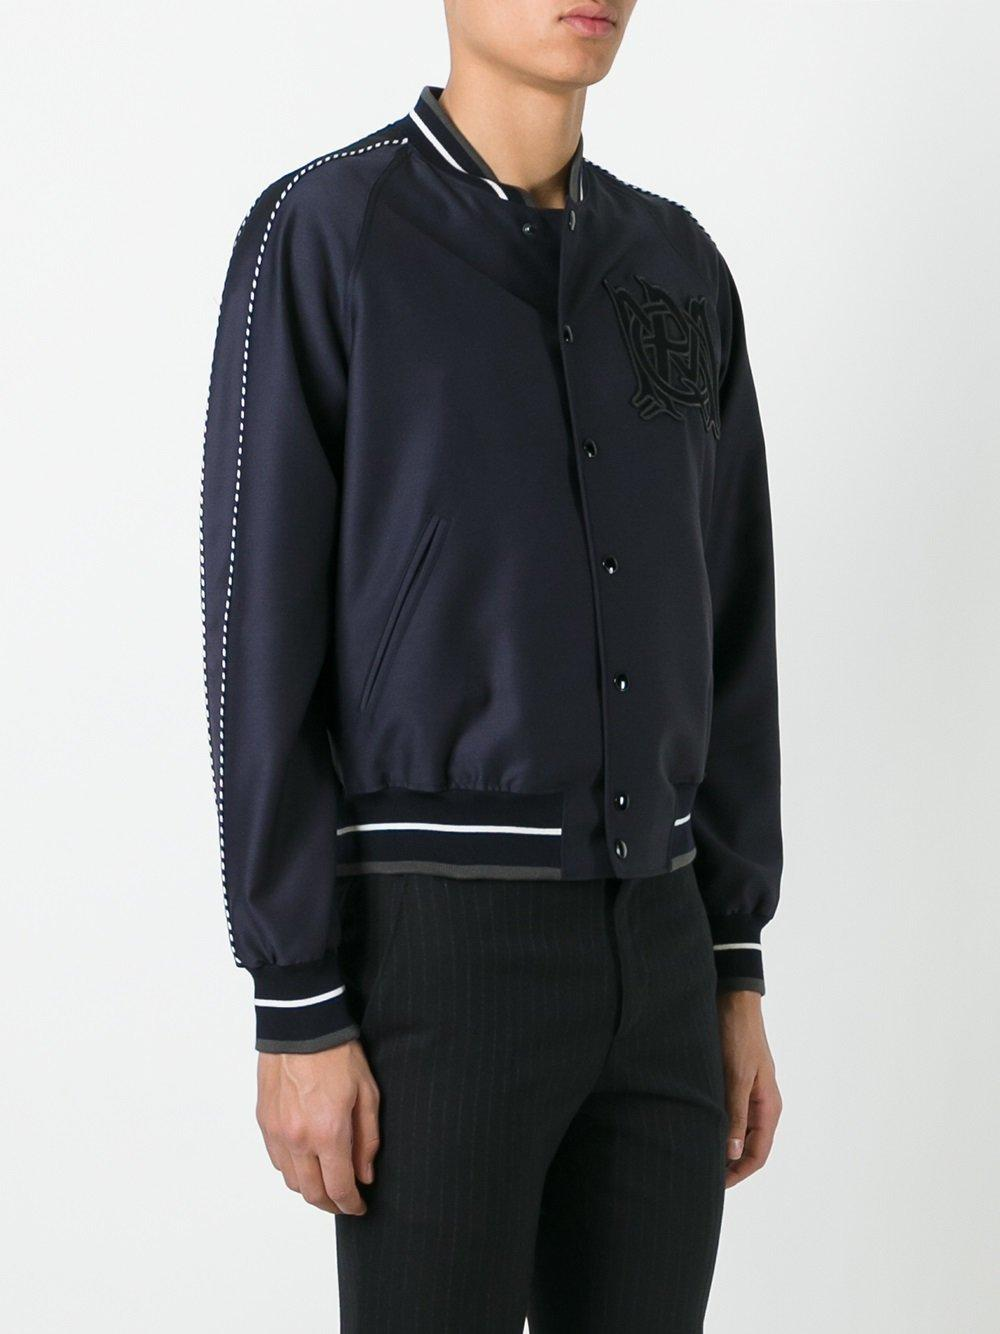 Alexander mcqueen Insignia Bomber Jacket in Blue for Men ...